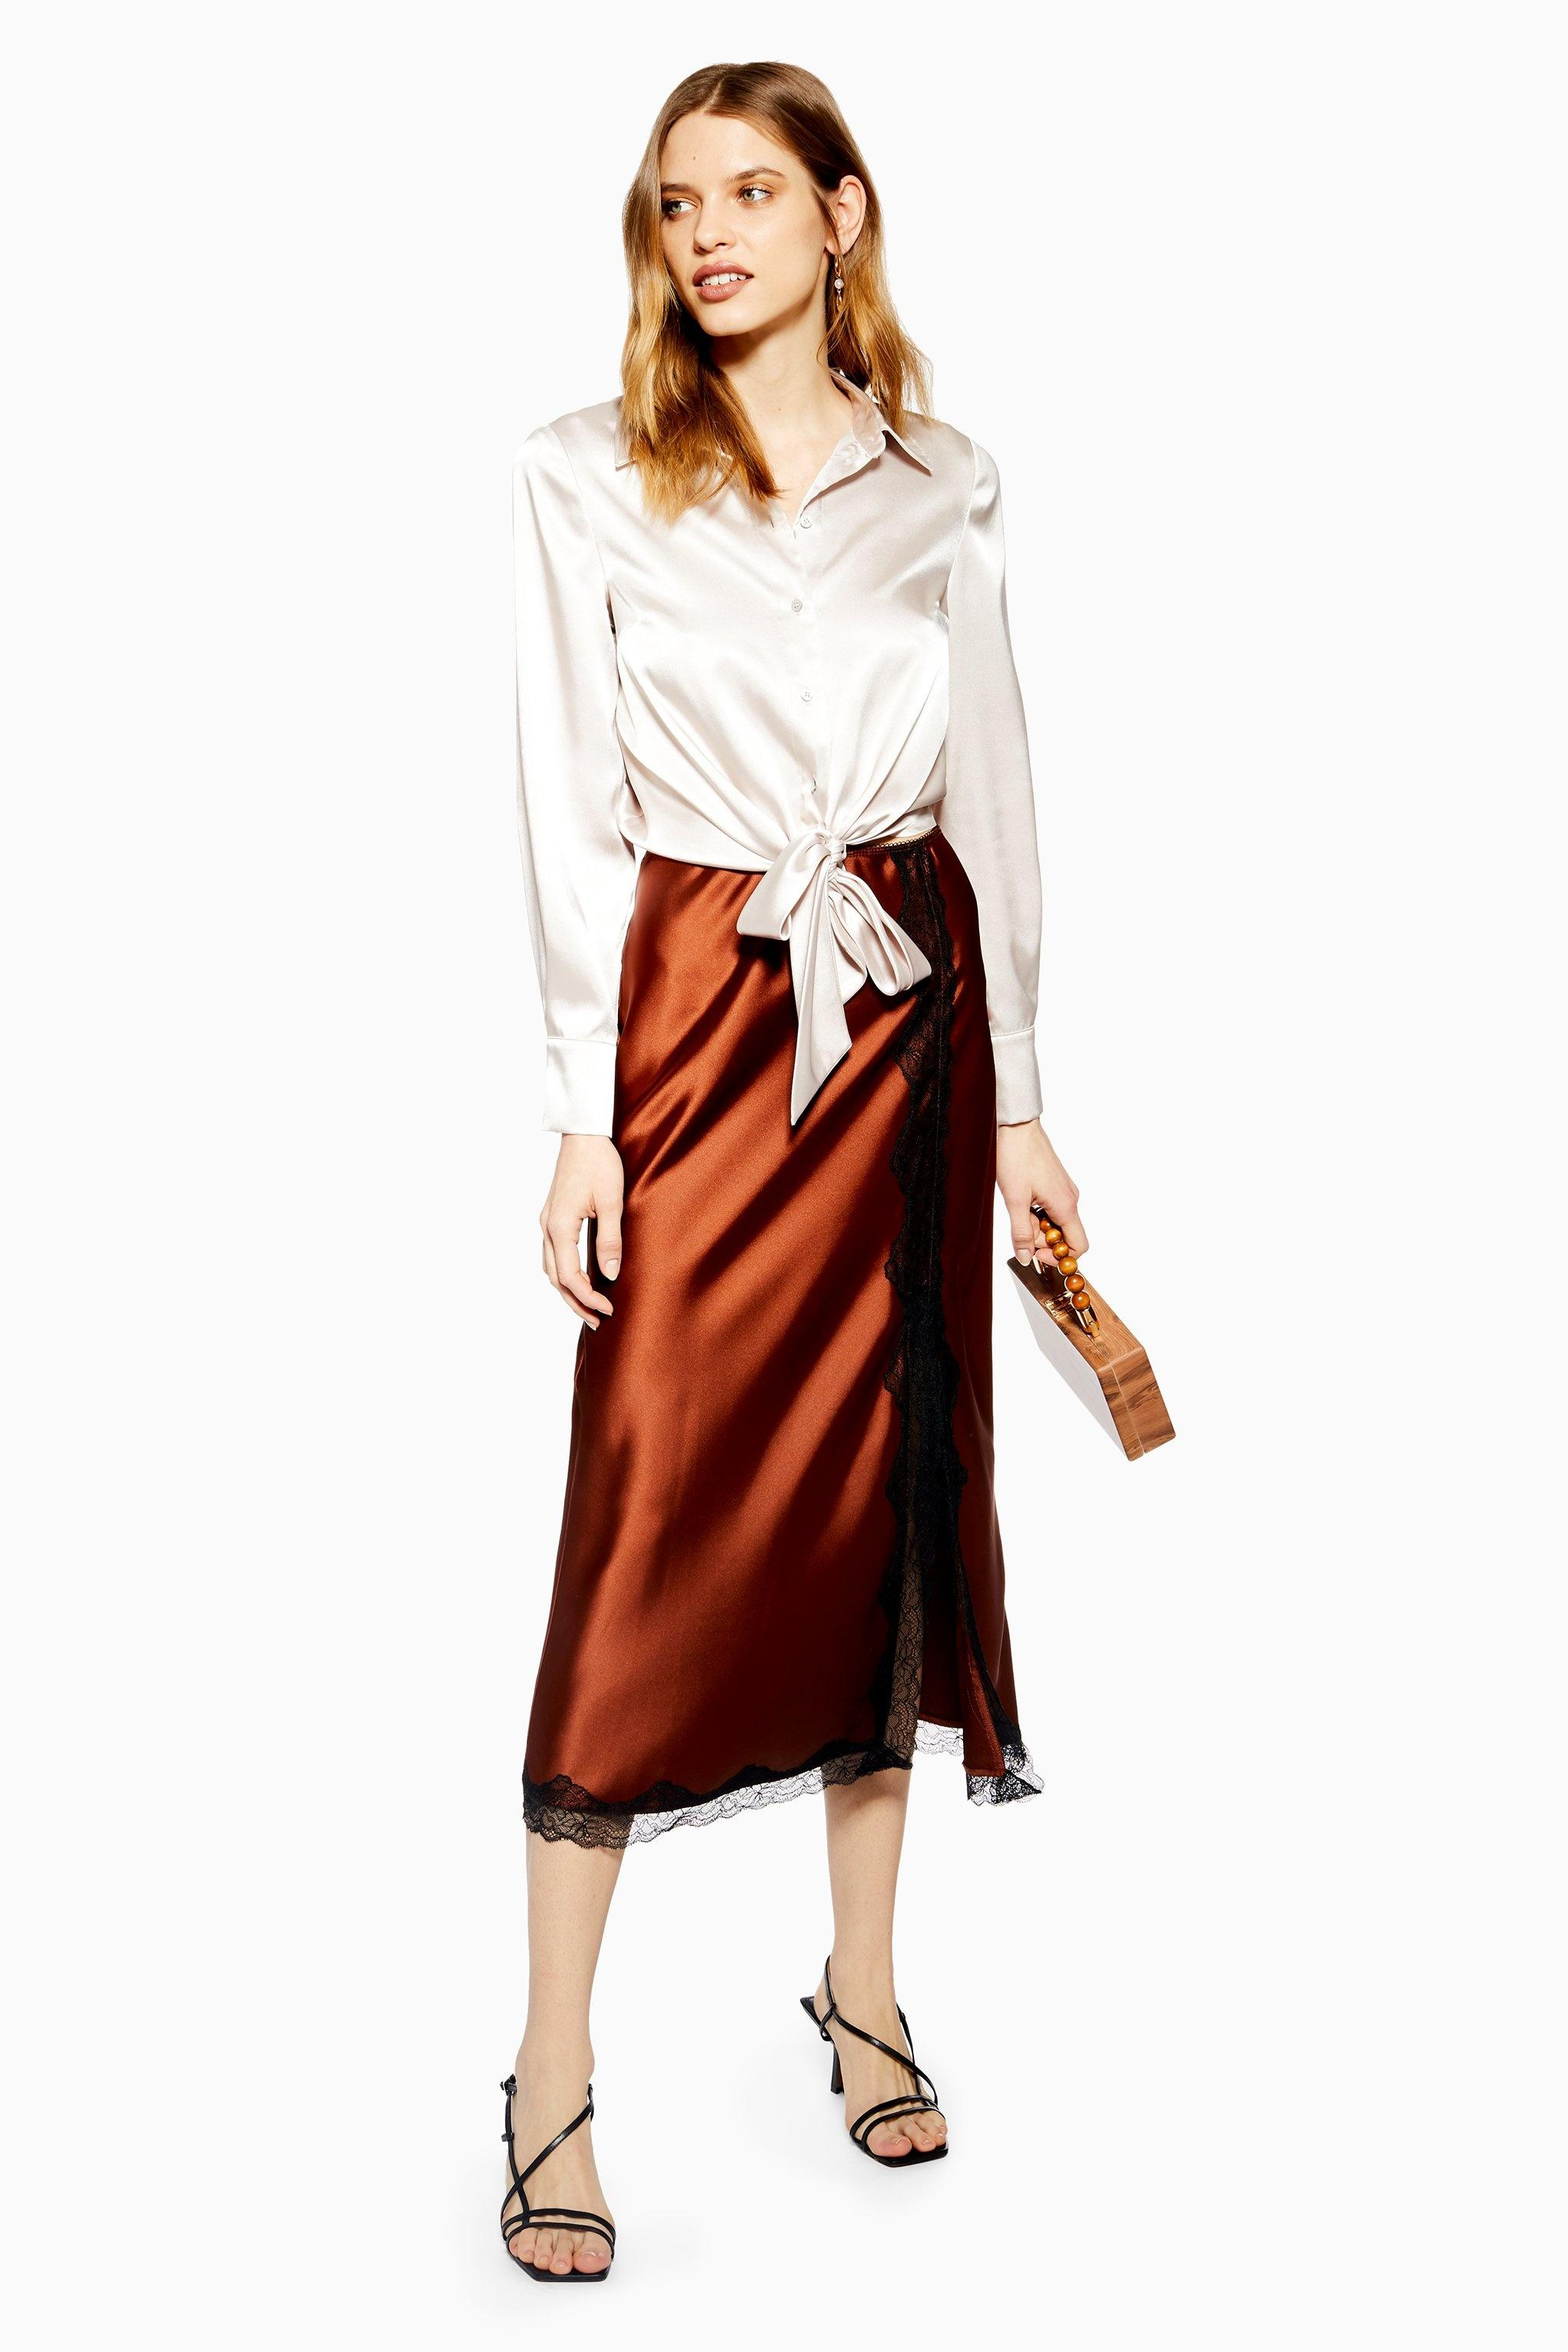 91d1e8118d Lyst - TOPSHOP Lace Trim Satin Bias Midi Skirt in Brown